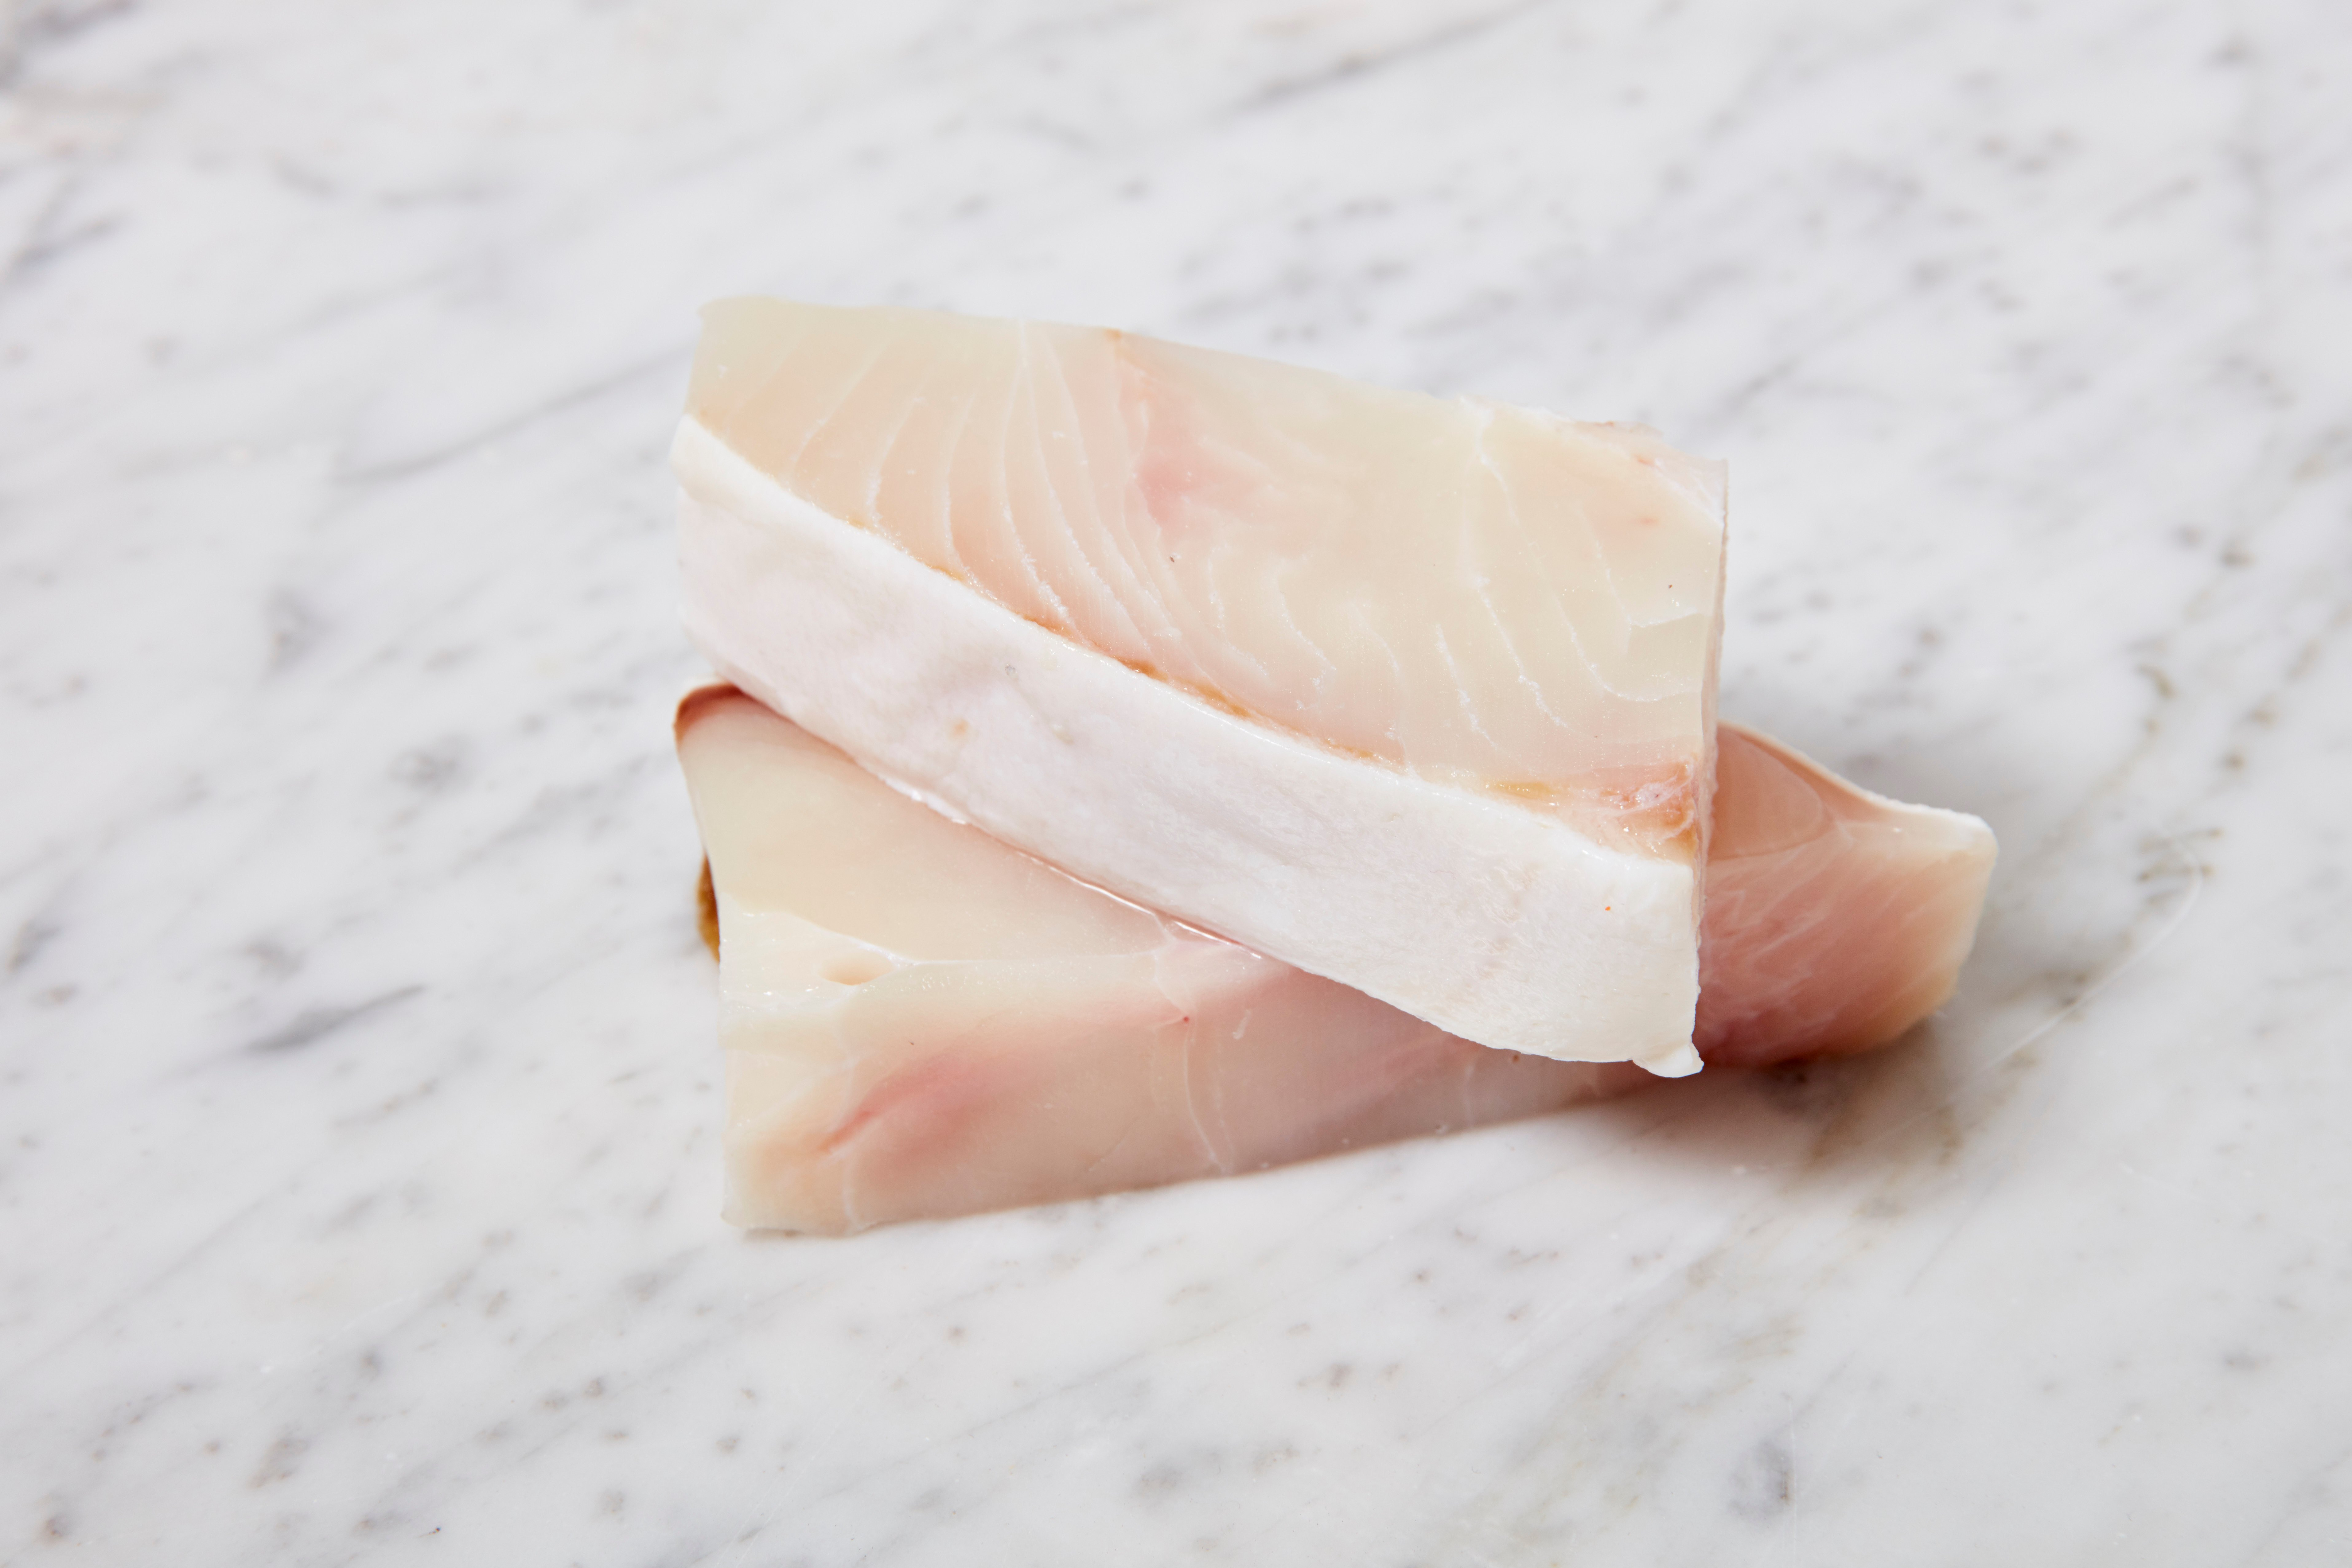 never eat dry halibut again